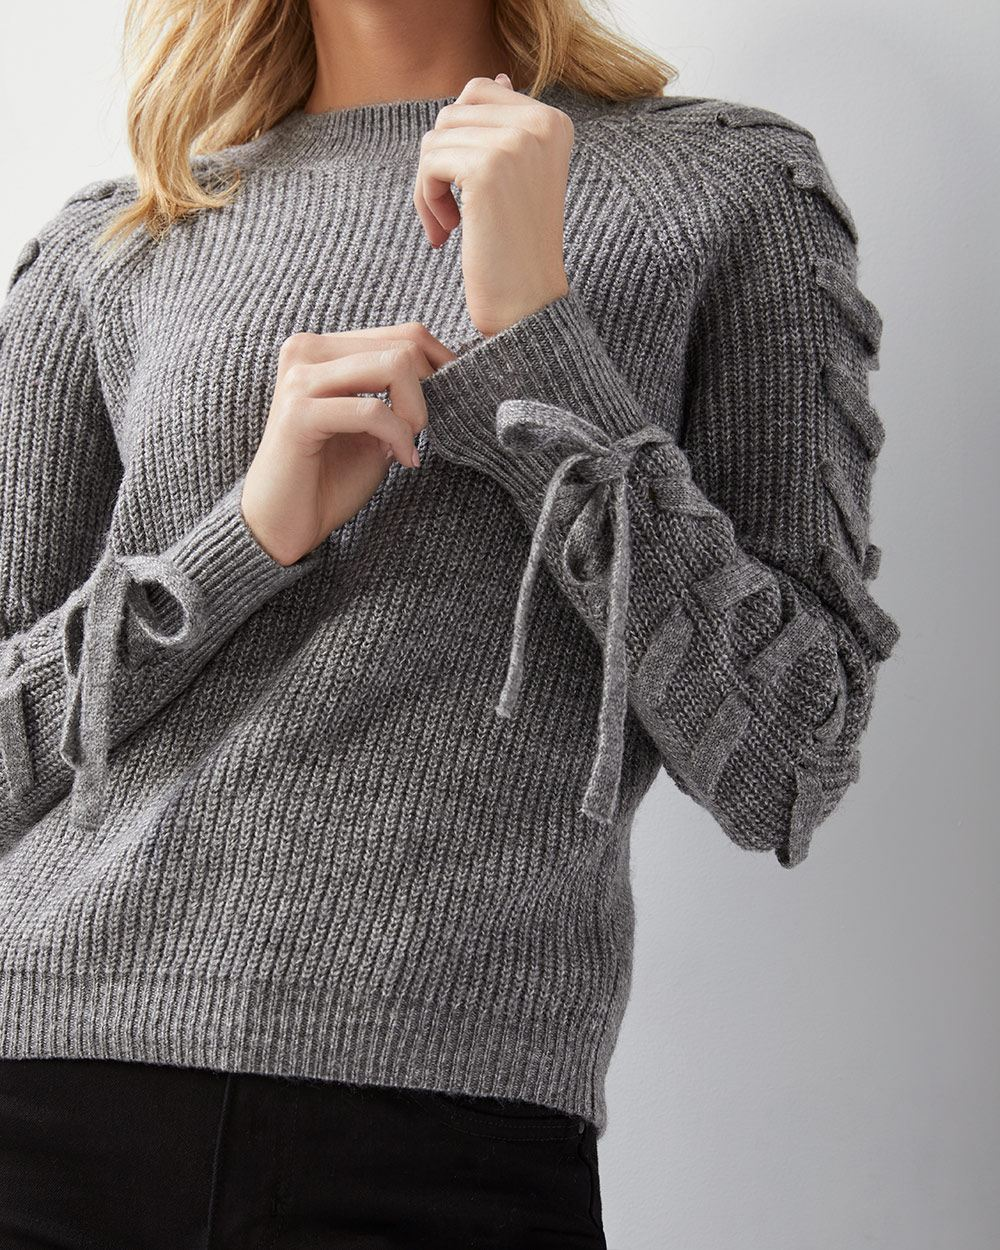 22829428c0 Lace-up sleeve sweater